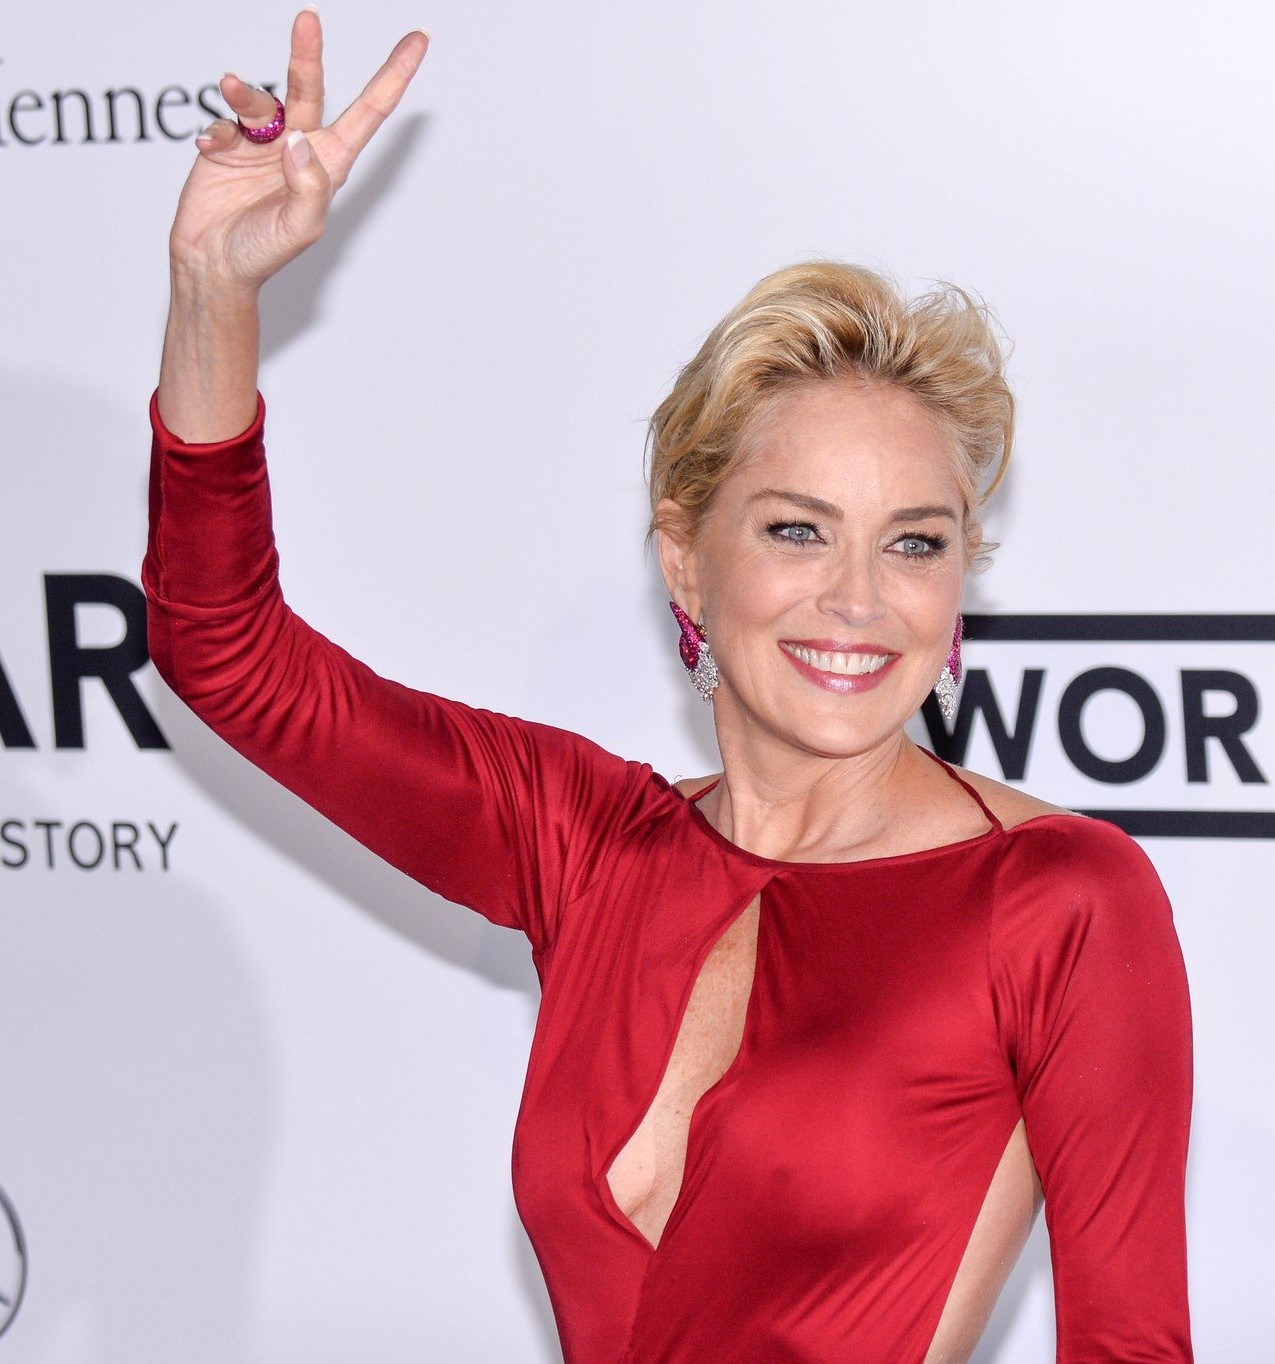 Sharon Stone. amfAR's 21st Cinema Against AIDS Gala Presented By WORLDVIEW, BOLD FILMS, And BVLGARI at Hotel du Cap-Eden-Roc on May 22, 2014 in Cap d'Antibes, France. EC/PS/MCI, Image: 194471696, License: Rights-managed, Restrictions: NONE, Model Release: no, Credit line: Profimedia, Whats Up